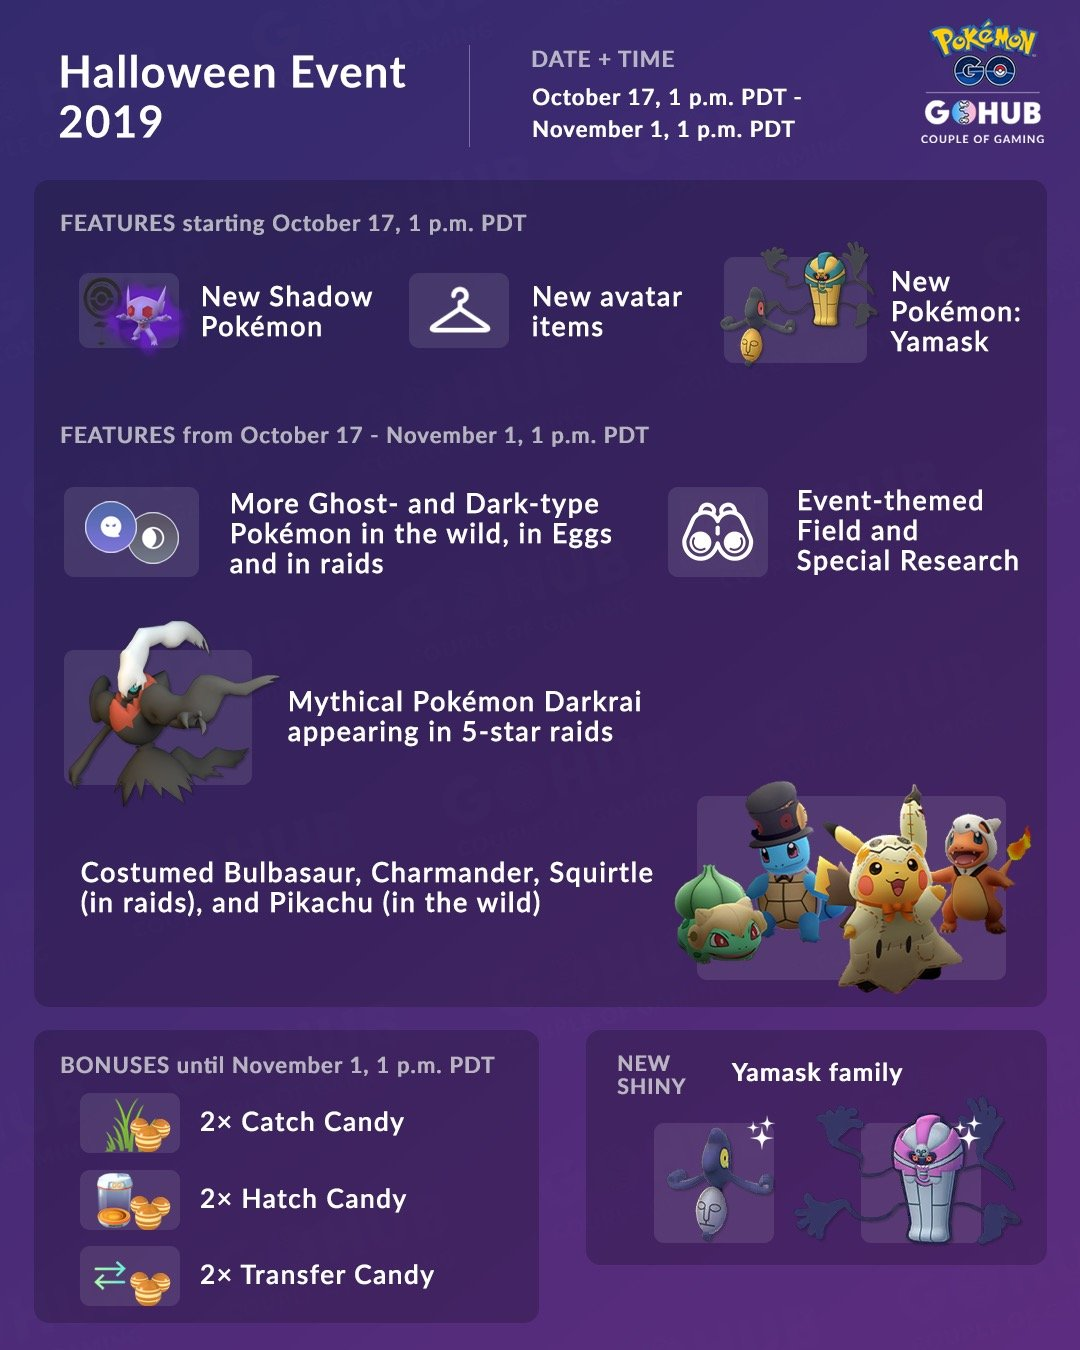 Quest Rewards Halloween Event 2020 Pokémon GO Halloween 2019 | Pokemon GO Hub